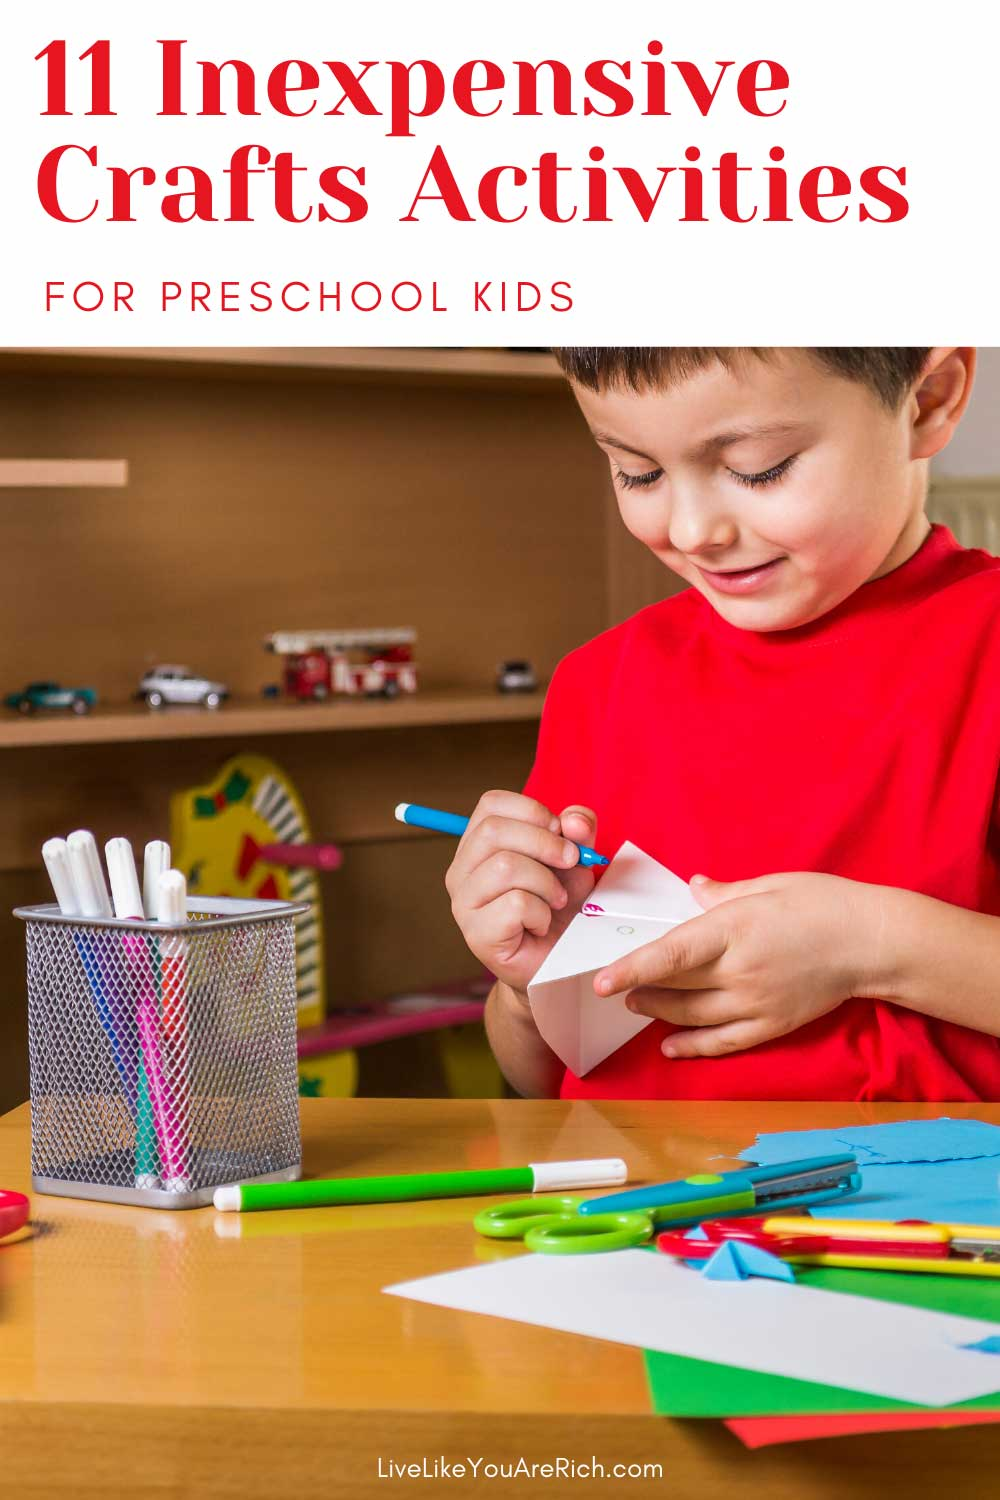 Looking for fun preschool age crafts to do at home? Here are some great ones I've rounded up. They are simple, inexpensive, and fun for kids ages 2-5. #crafts #kidsactivities #activitiesforkids